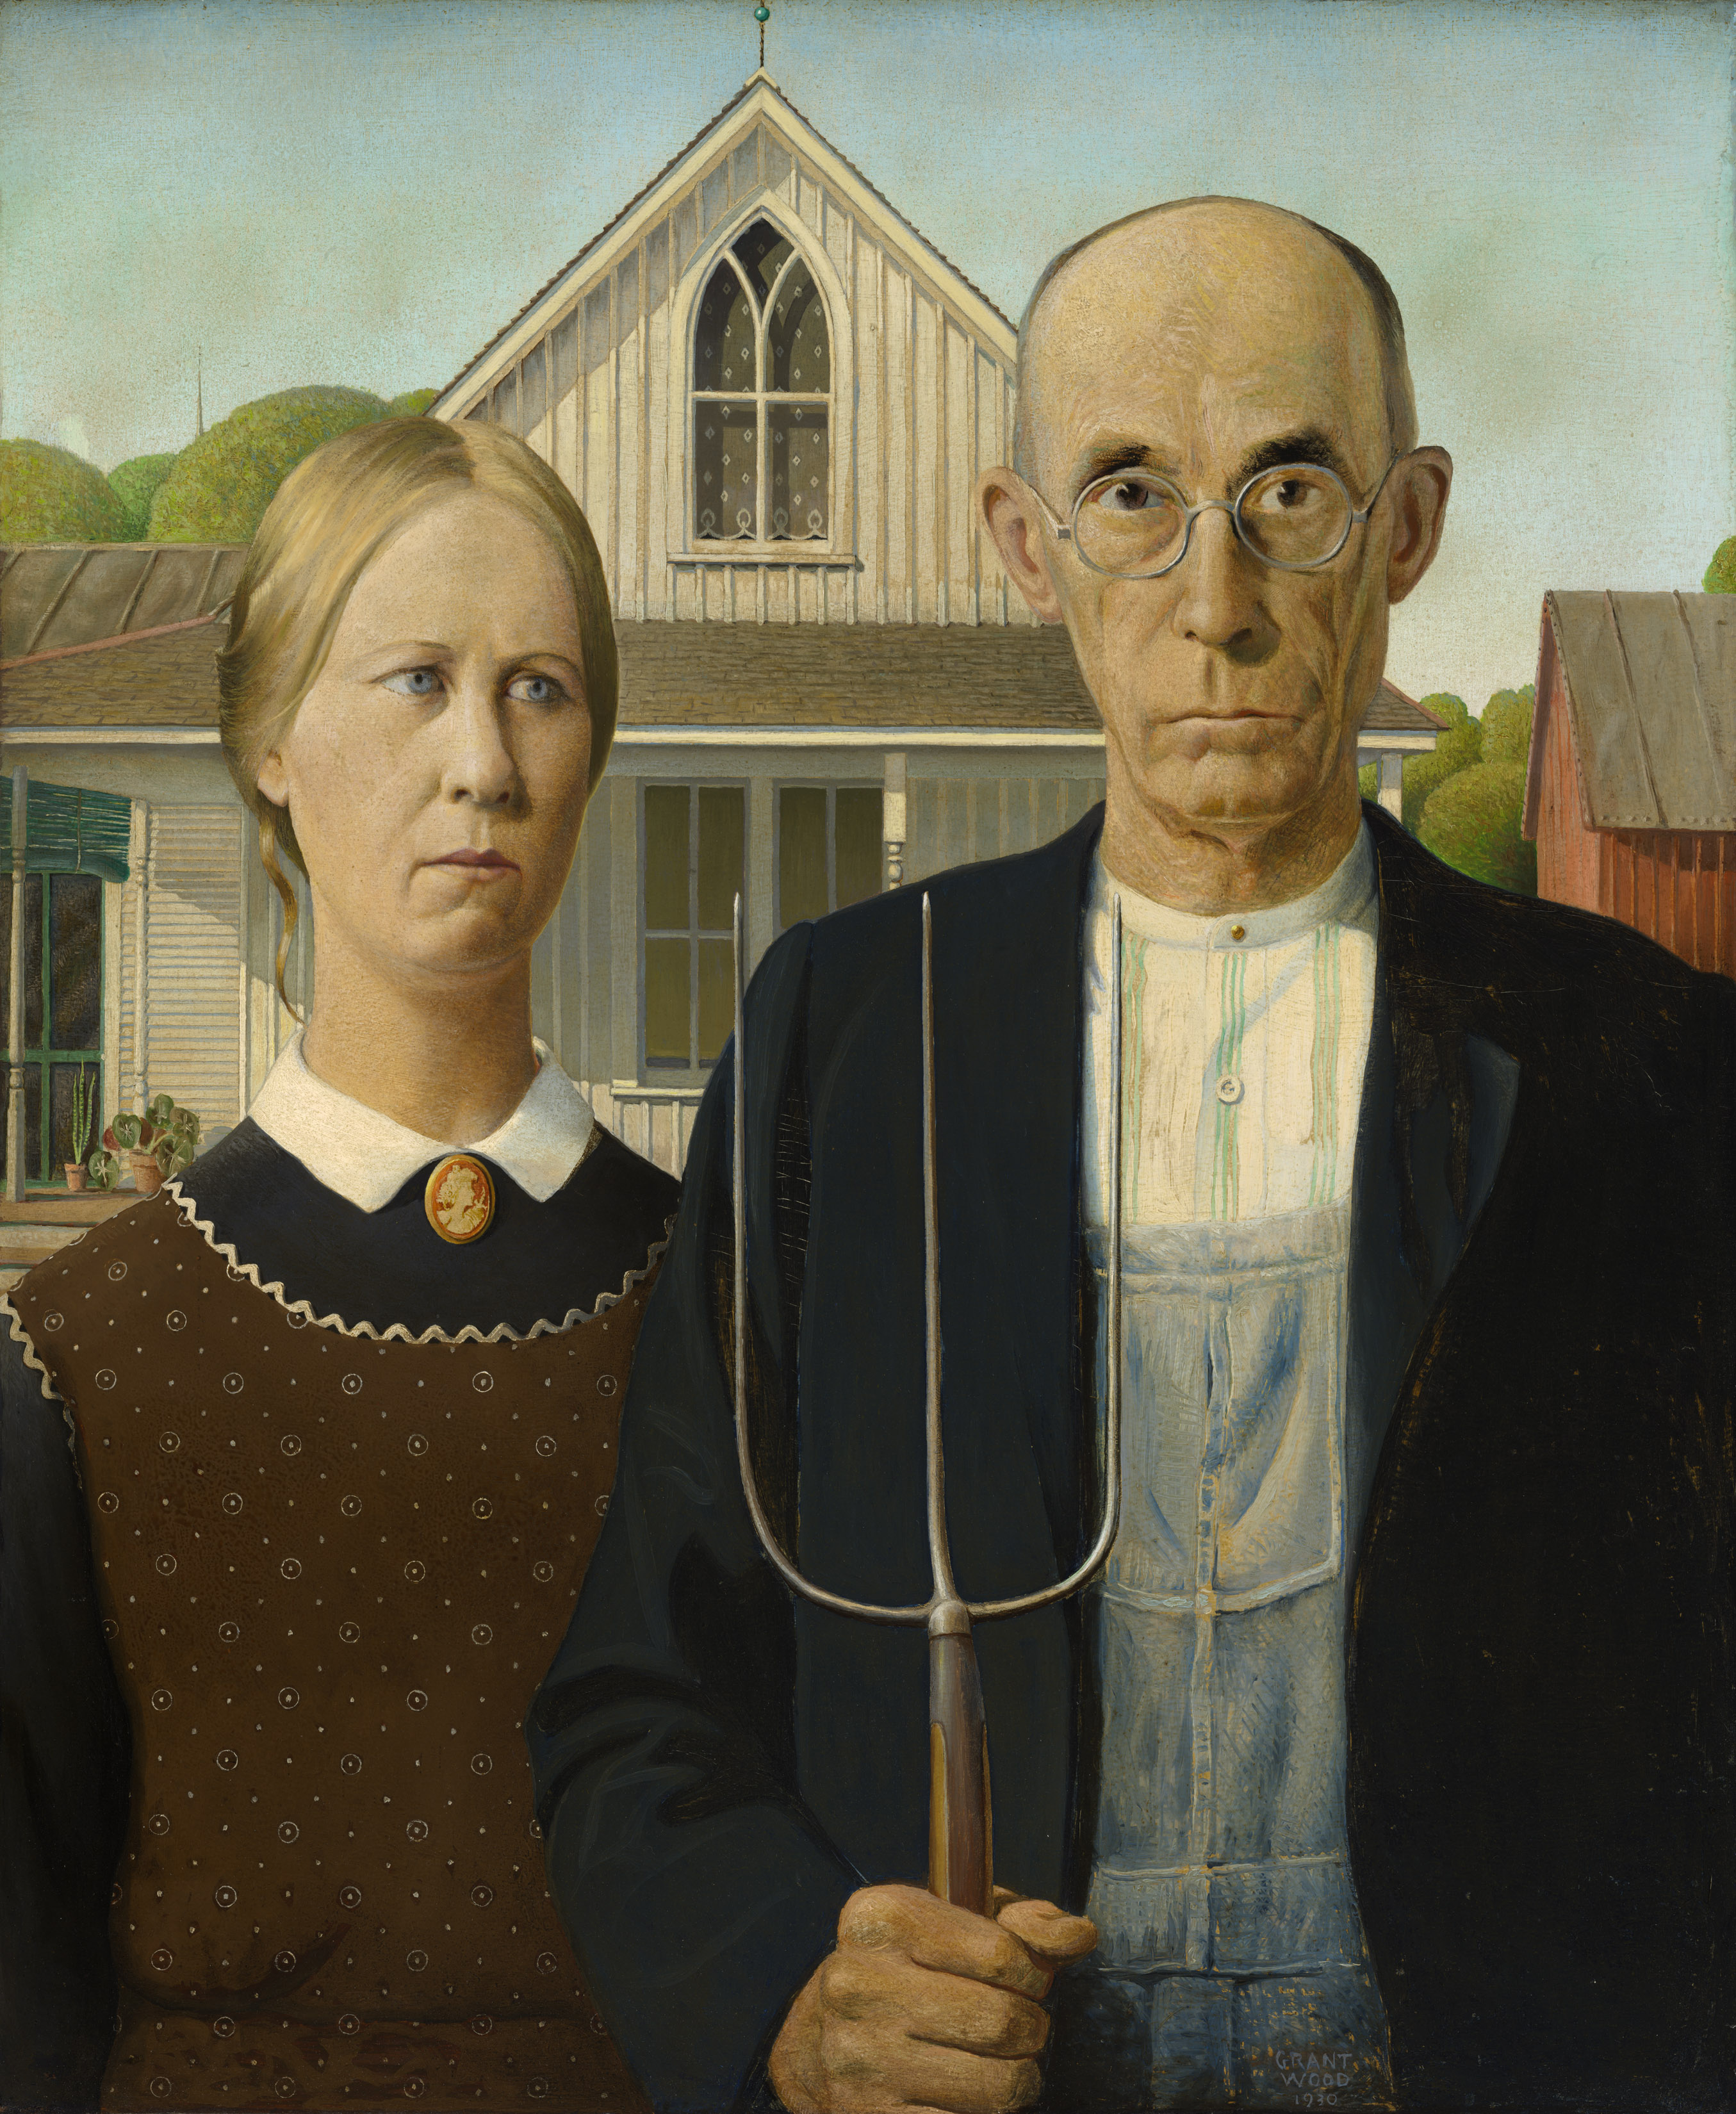 'American Gothic', 1930, by Grant Wood (1891-1942), Friends of American Art Collection 1930.934  © The Art Institute of Chicago/Royal Academy